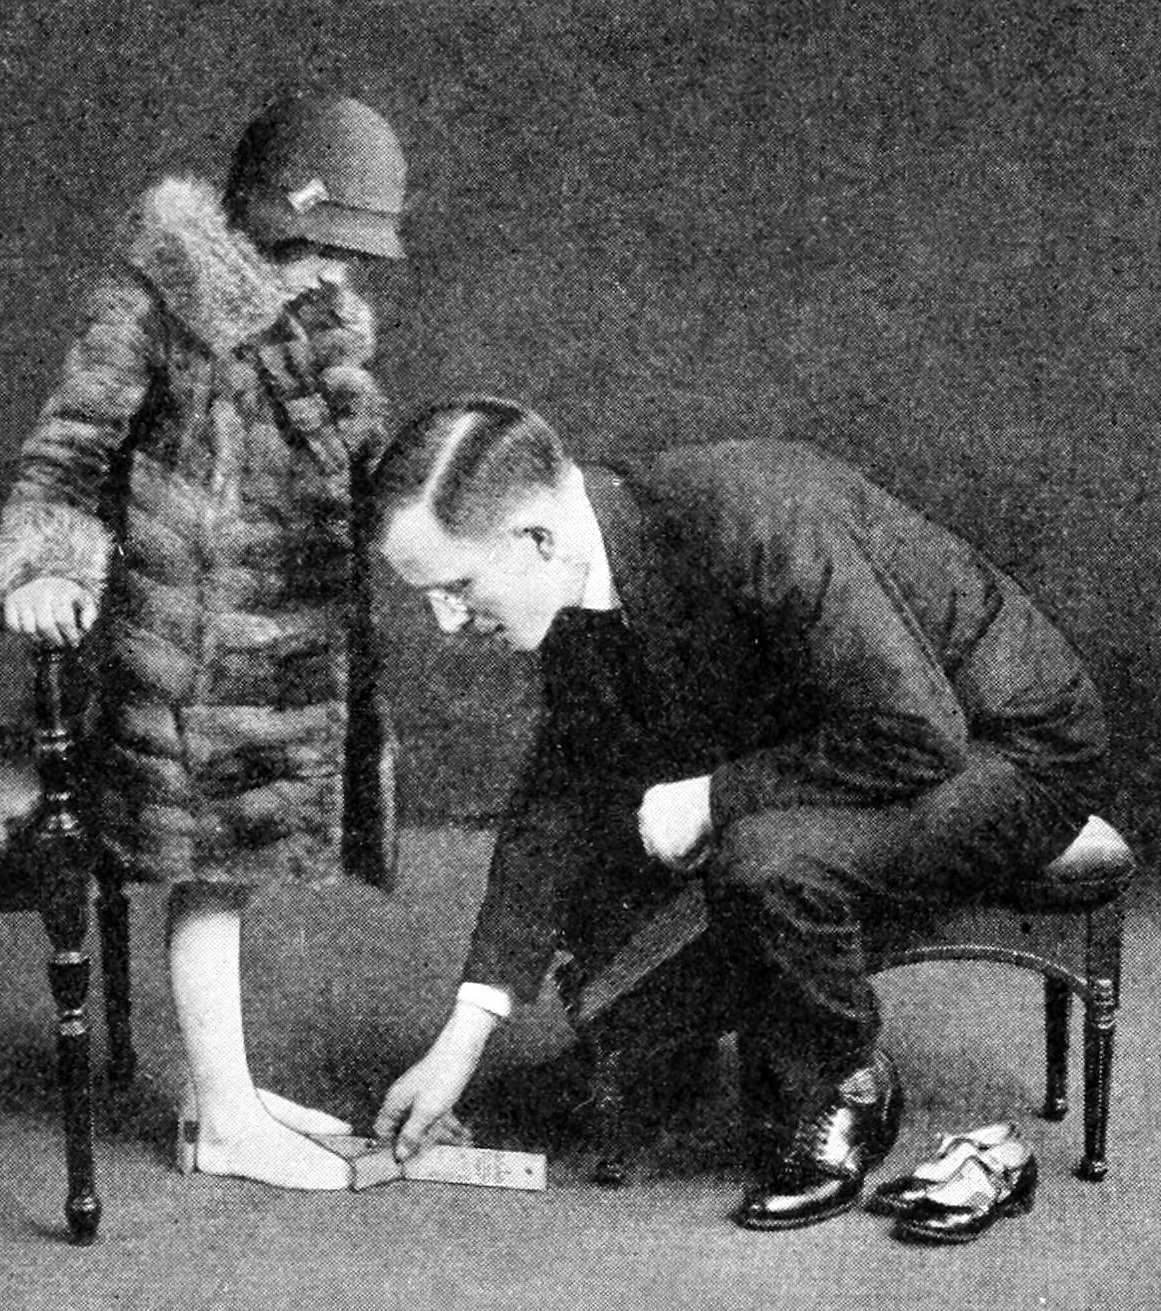 Measuring the foot for shoes (1929)